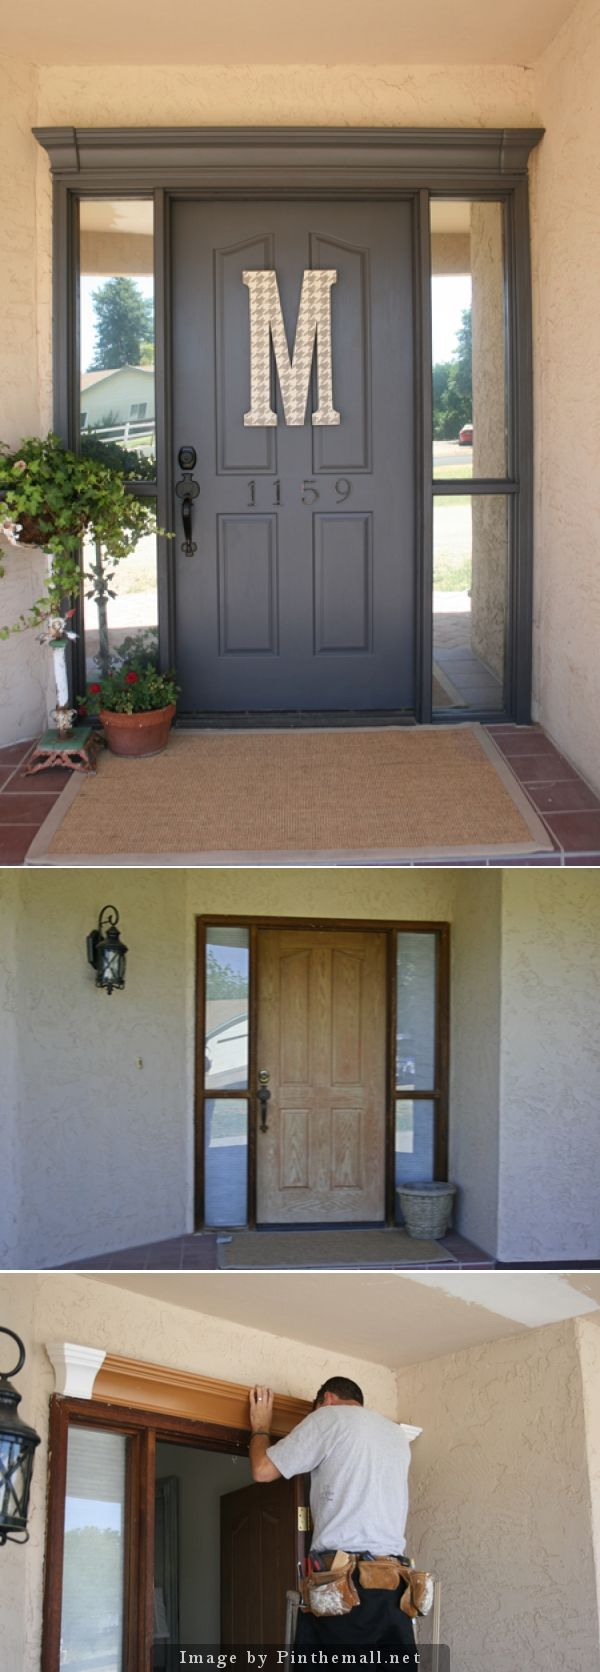 Before-After of rental front door. Foam-type crown molding Lowe's installed on top. Benjamin Moore Iron Mountain satin exterior paint. Big letter M from Joann's painted in hounds tooth pattern.